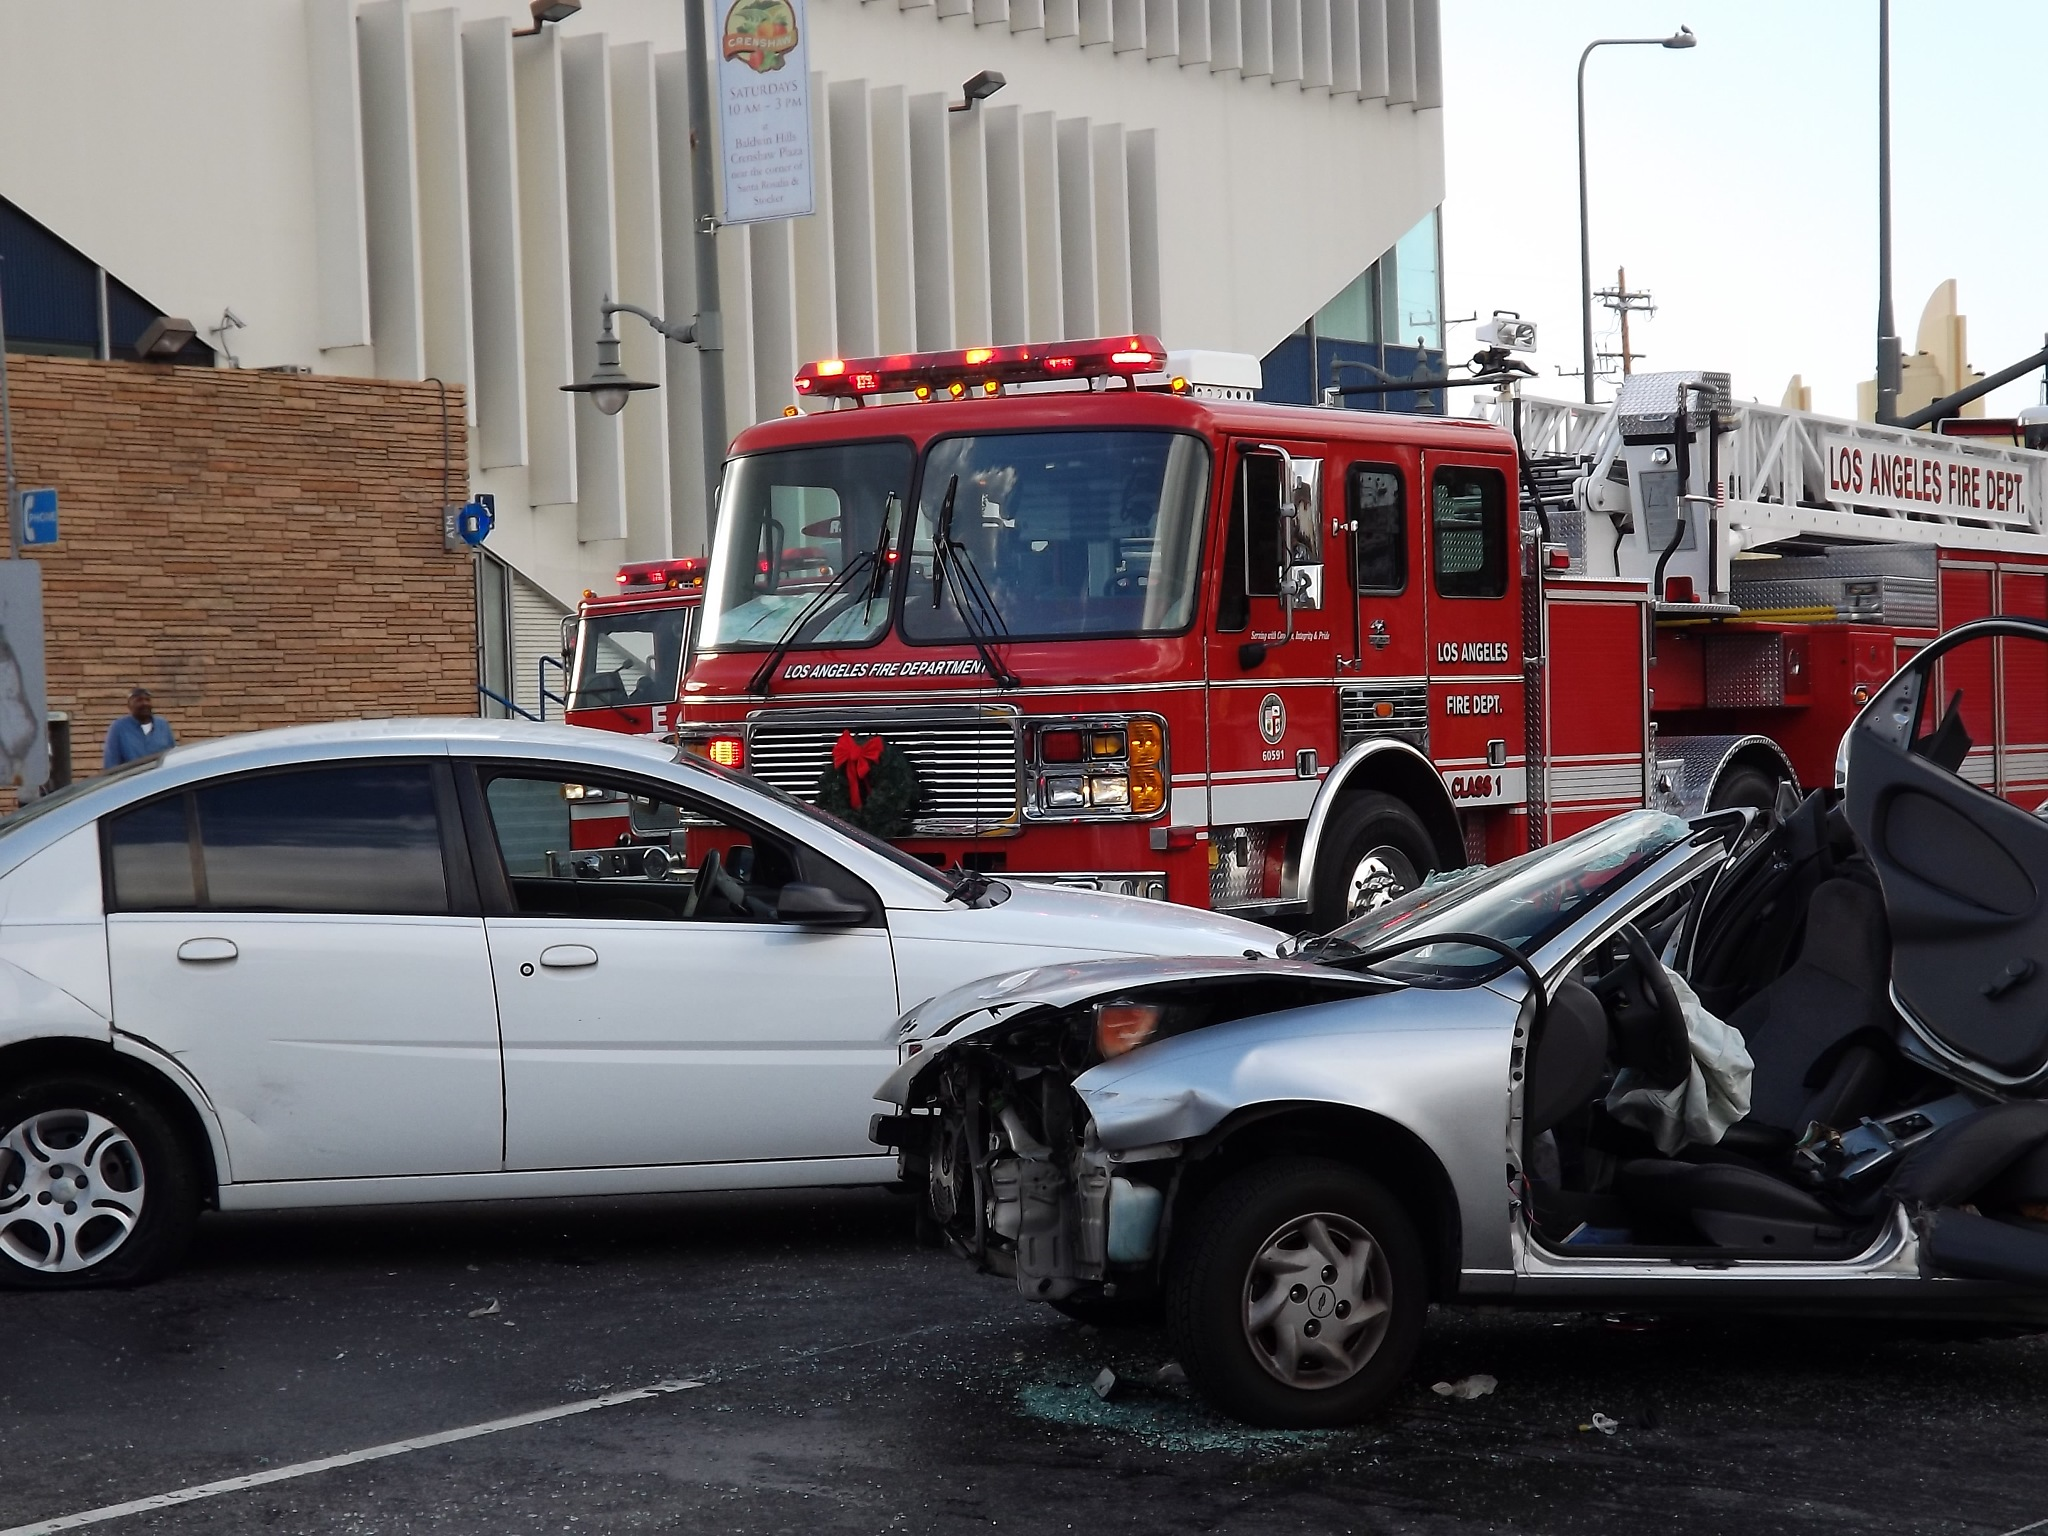 Vehicular Carnage Down on Crenshaw by BC - atomic hot links